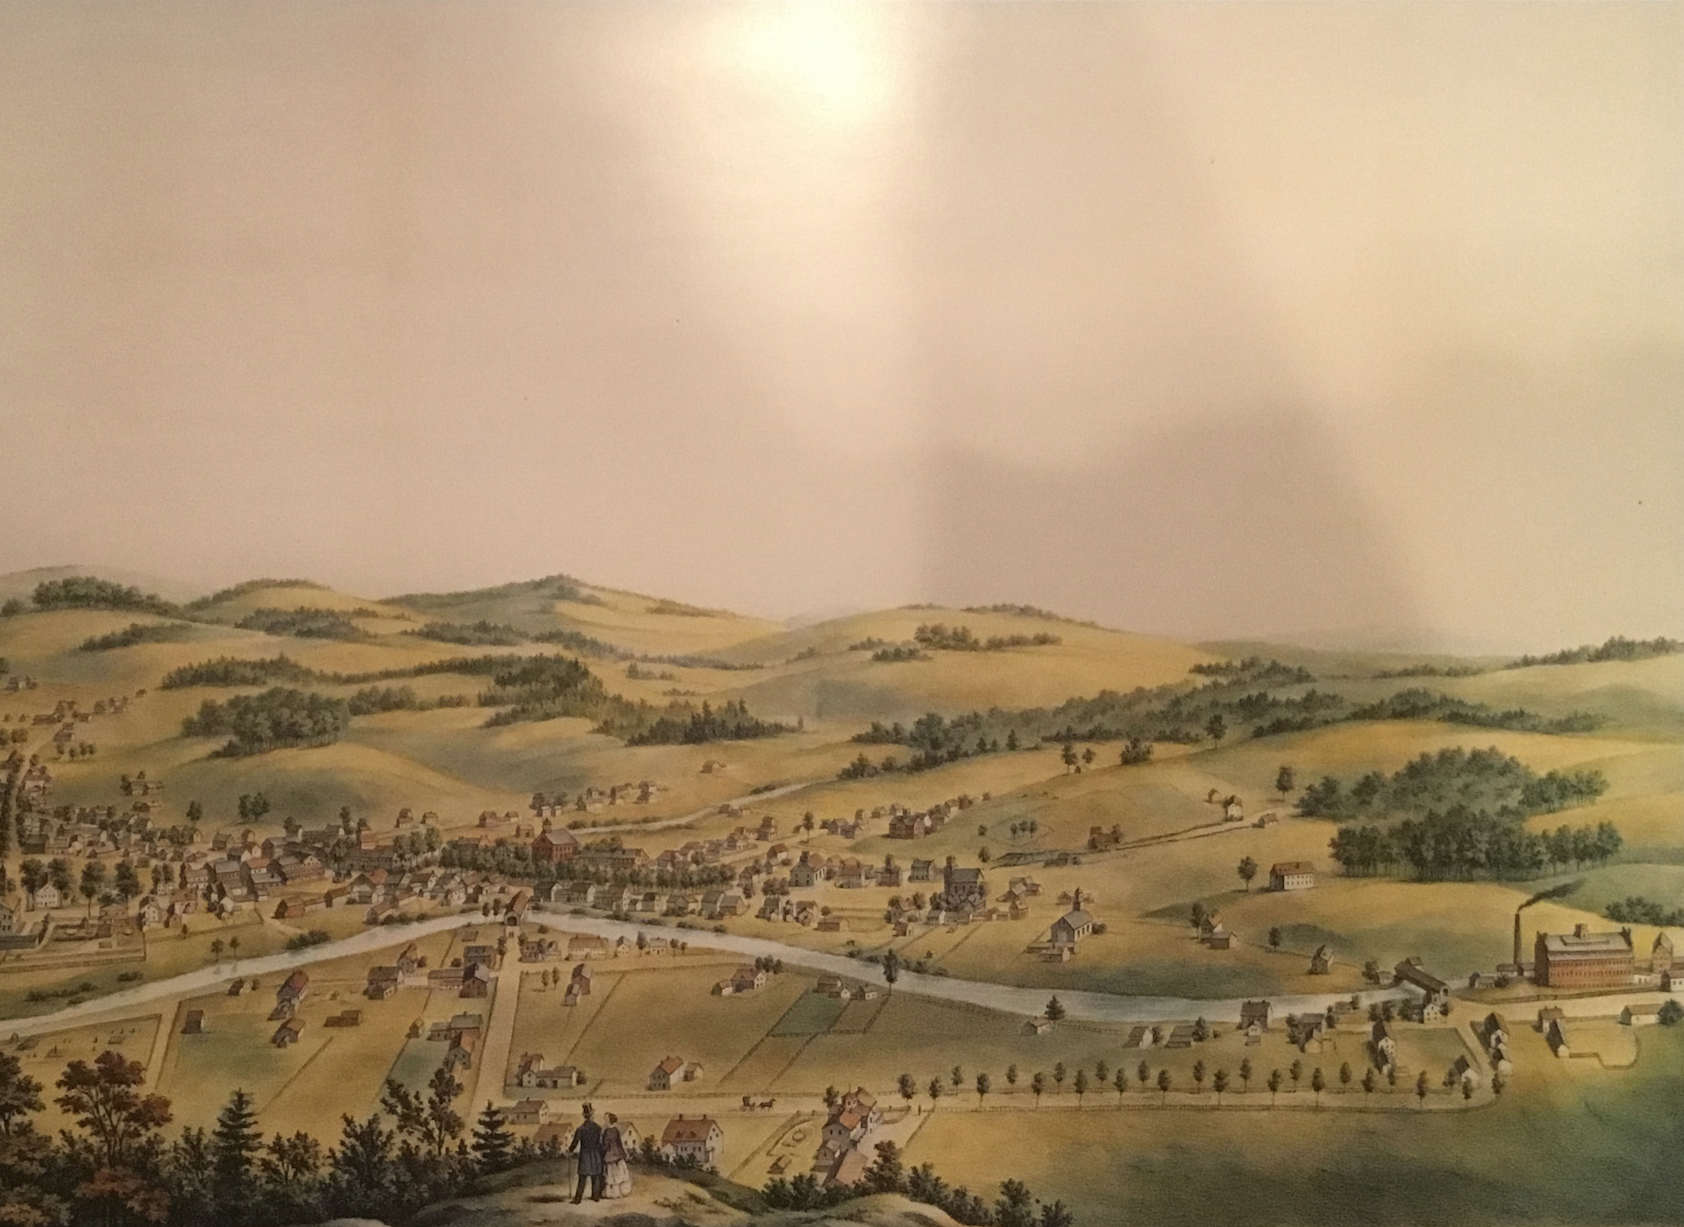 View of Woodstock Village from Mount Tom, 1859